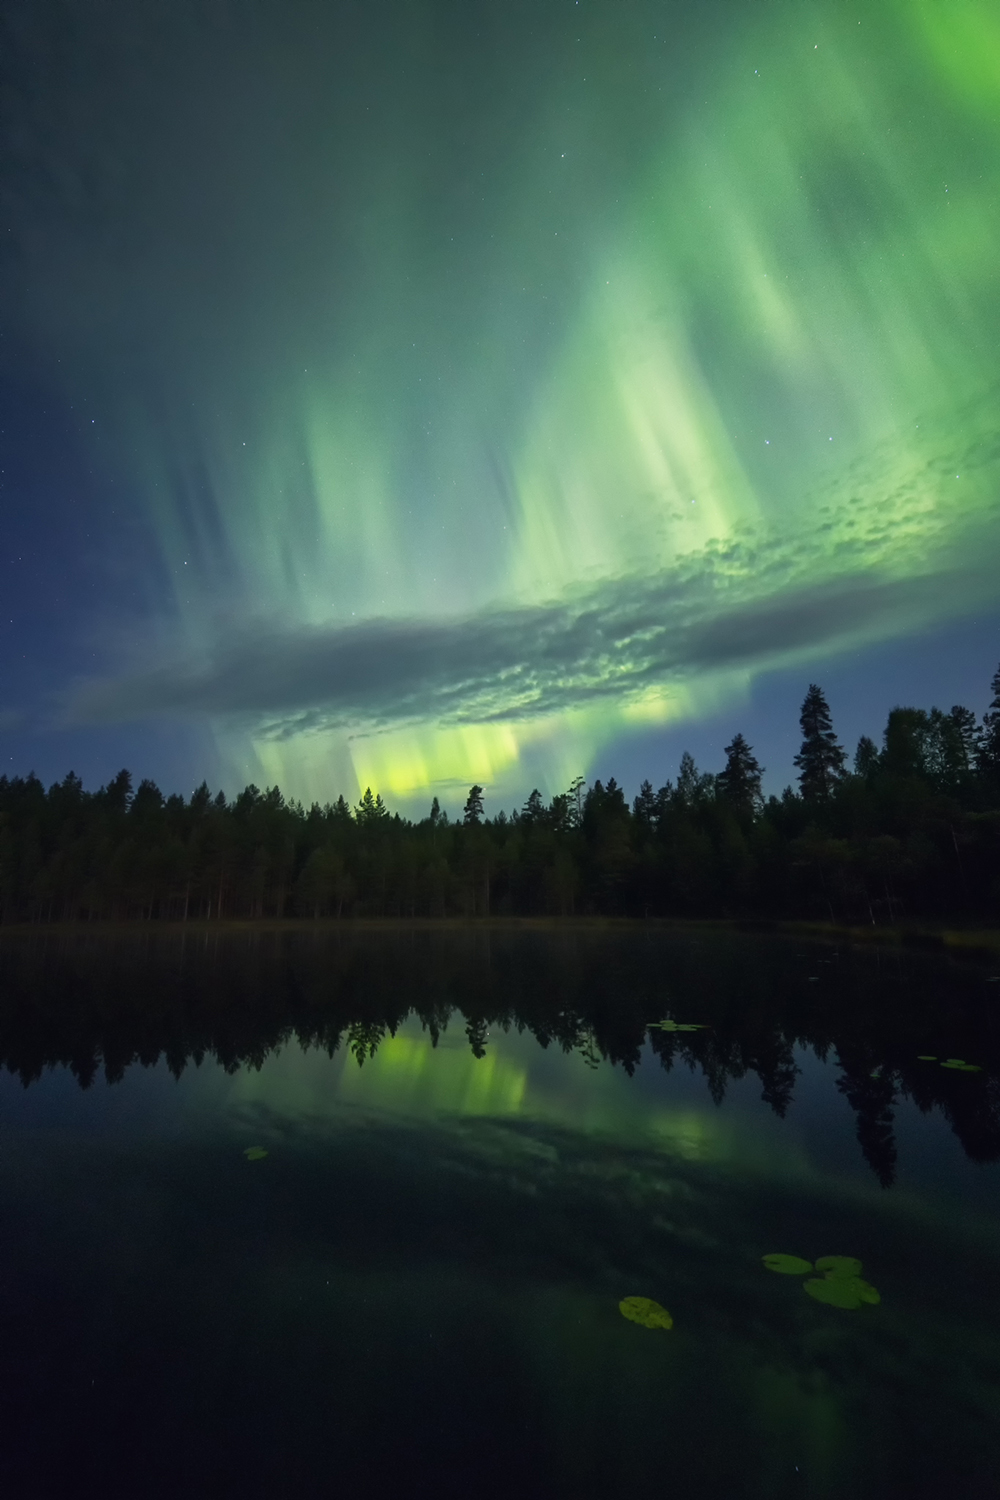 """Aurora magic"" Location: Leivonmäki National Park - August 2016"